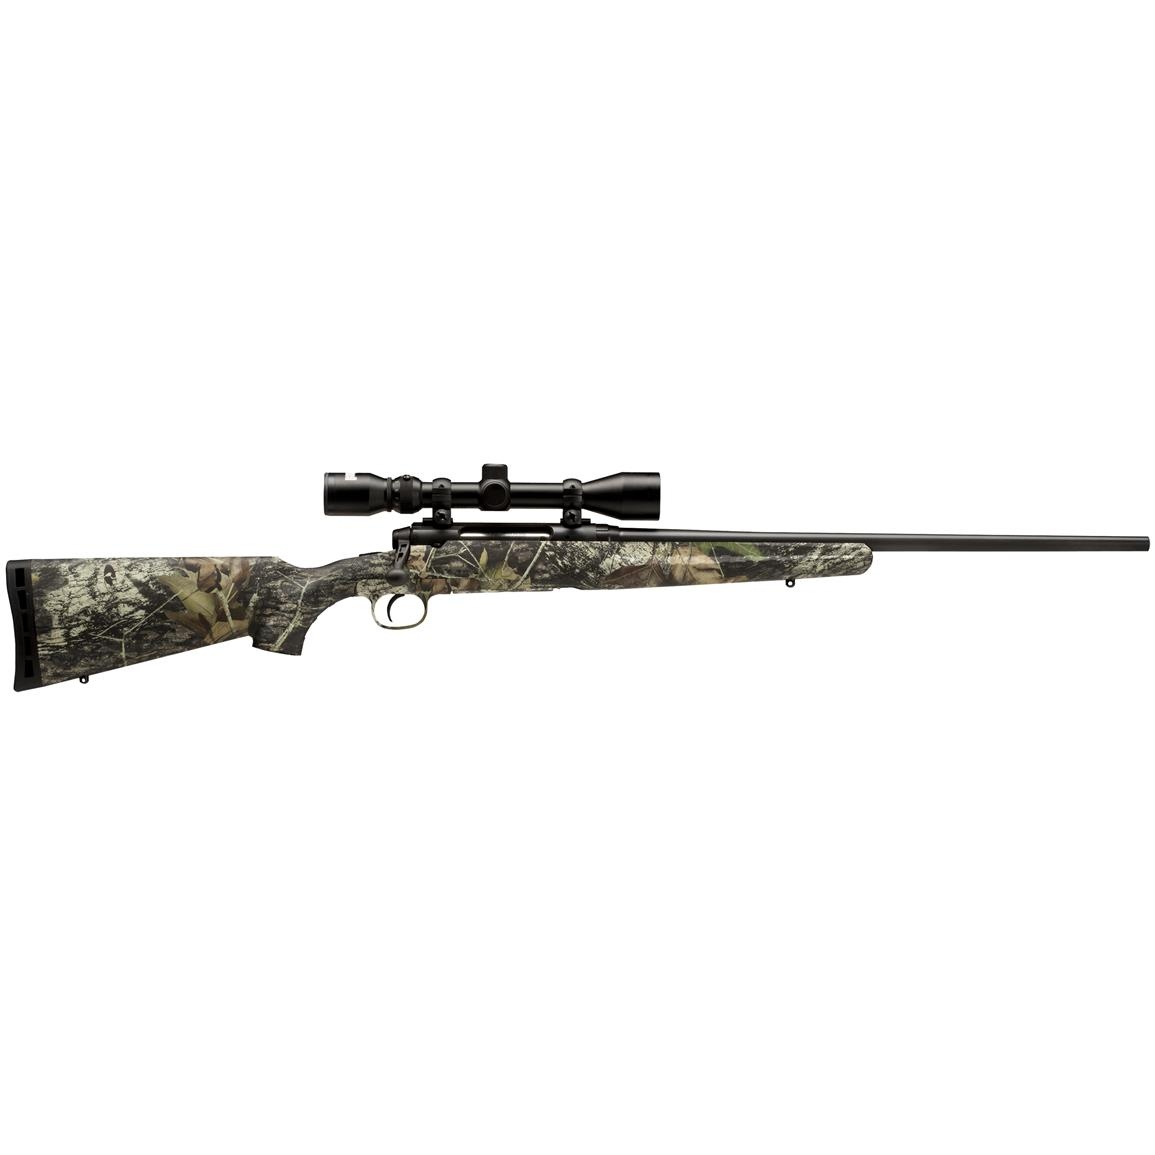 "Savage Axis XP Camo Series, Bolt Action, .30-06 Springfield, 22"" Barrel, 3-9x40 Scope, 4+1 Rounds"